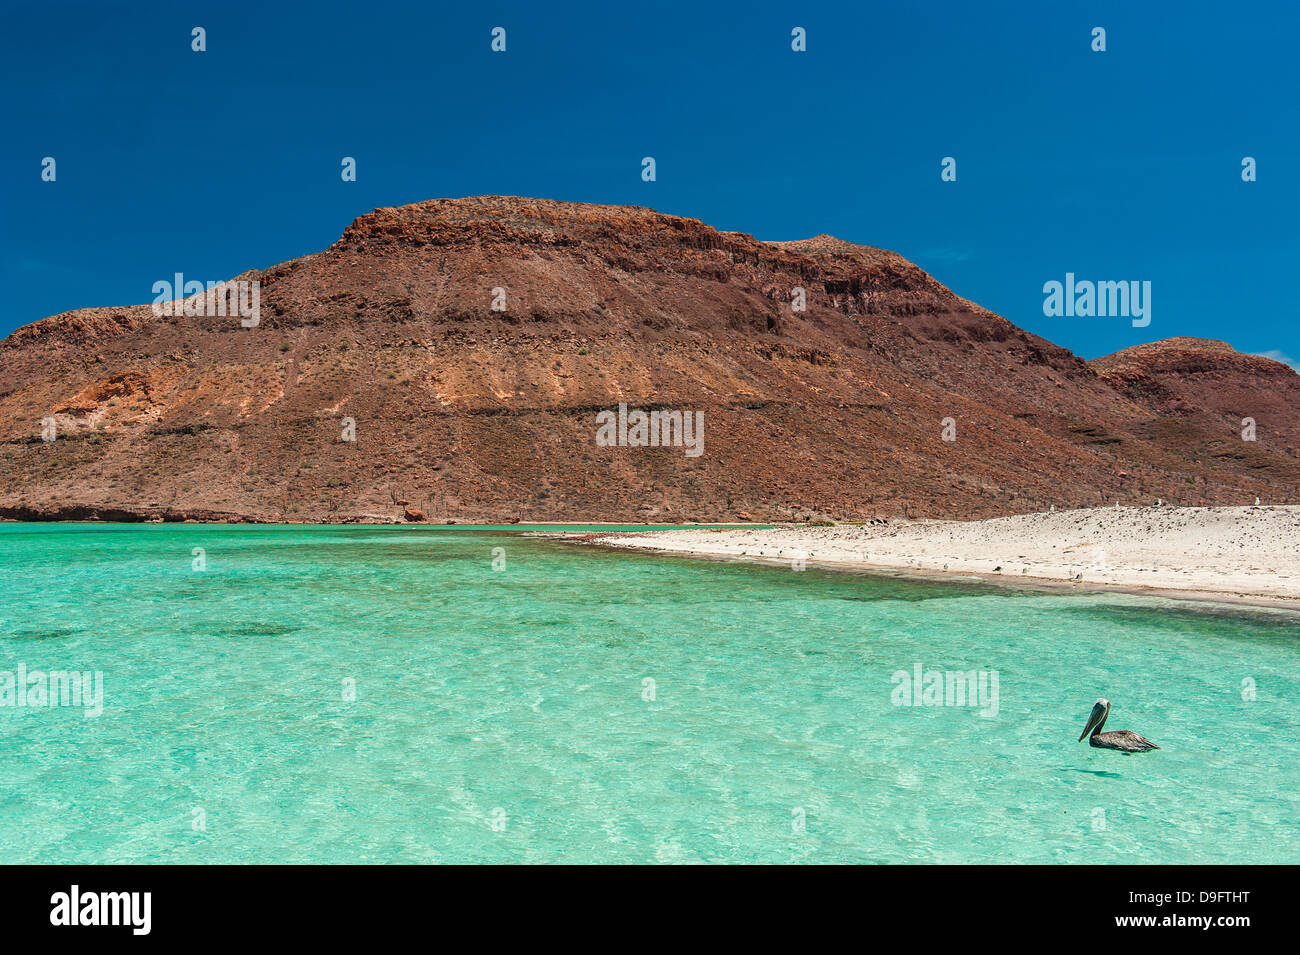 Pelicans in the turquoise waters at Isla Espiritu Santo, Baja California, Mexico - Stock Image